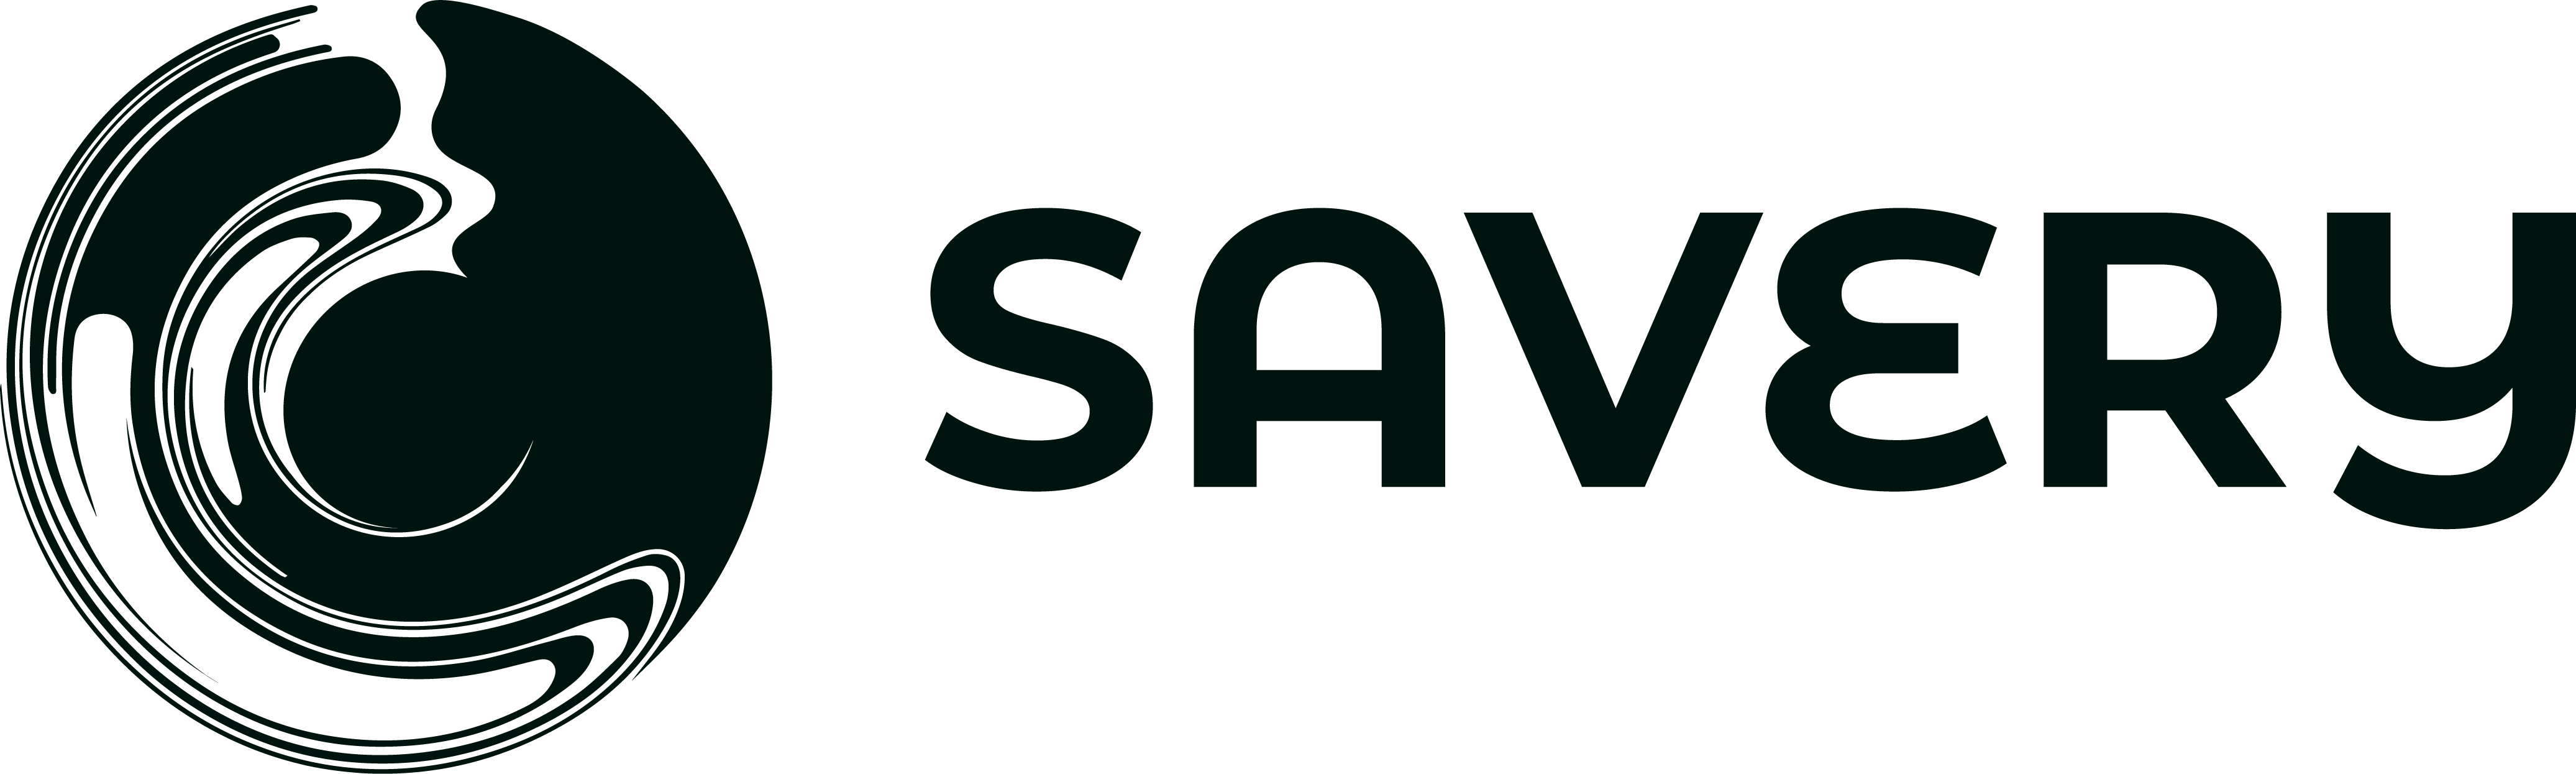 Savery – Saving energy. In a constant flow state.